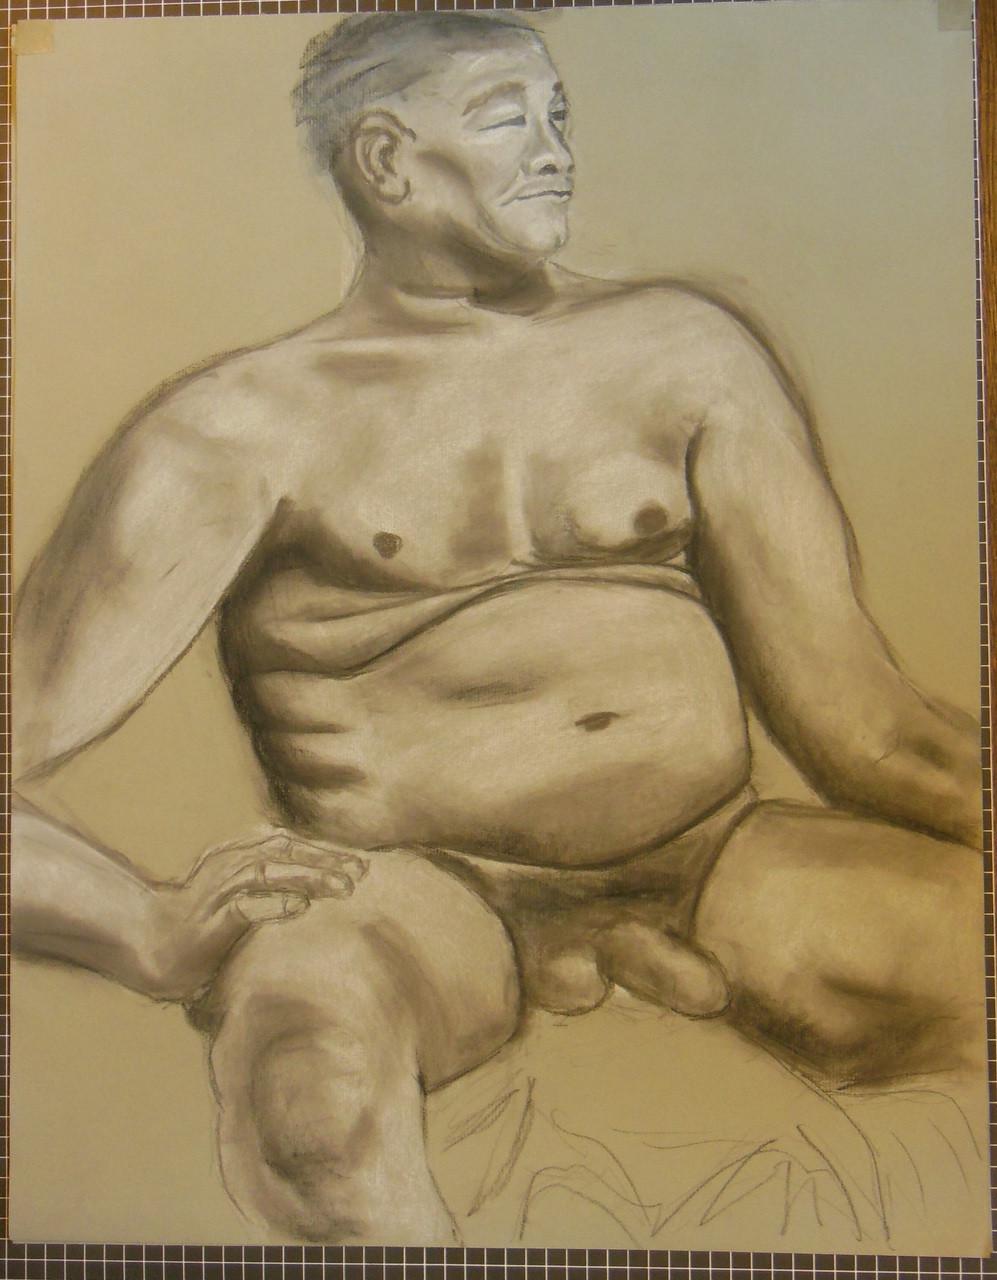 Nude Drawing: Charcoal & pastel on grey paper. 10